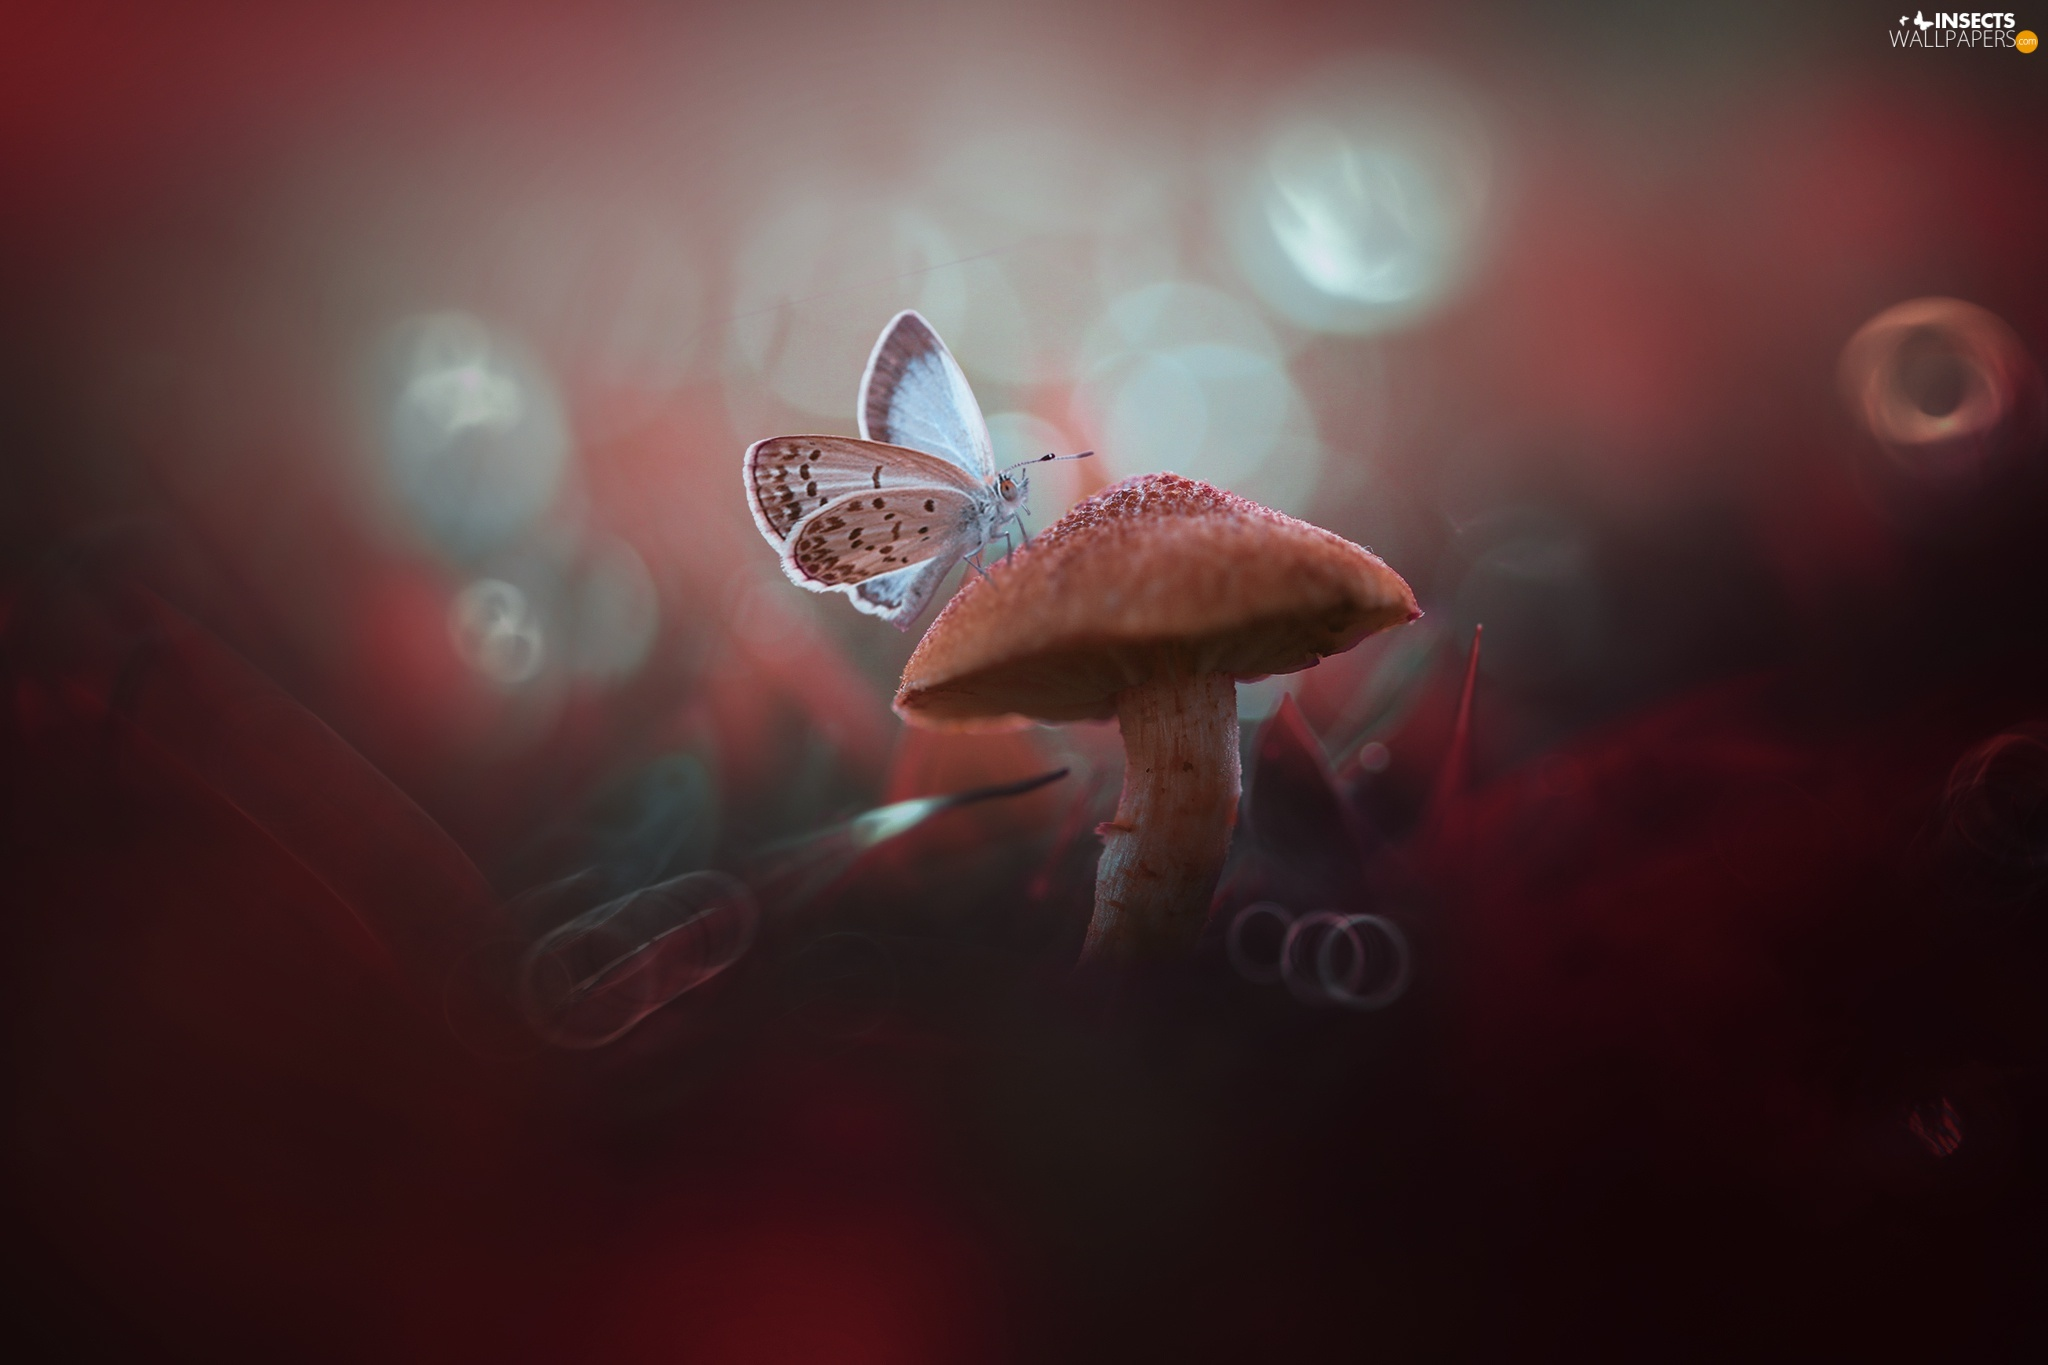 Mushrooms, Dusky Icarus, blurry background, butterfly